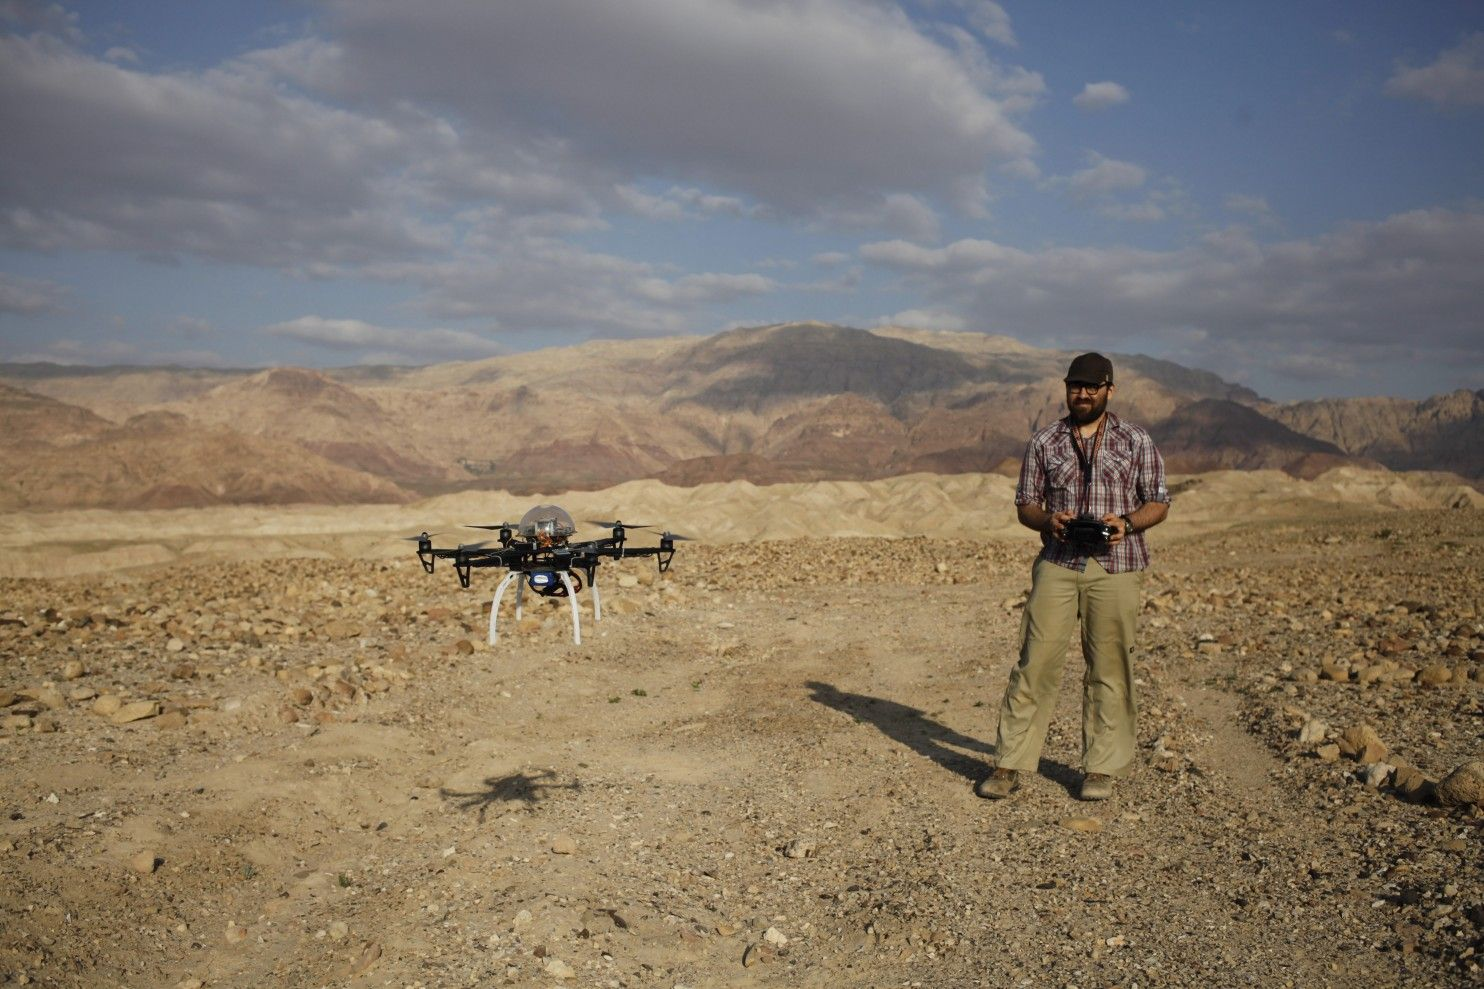 At Jordan site, drone offers glimpse of antiquities looting - The Washington Post